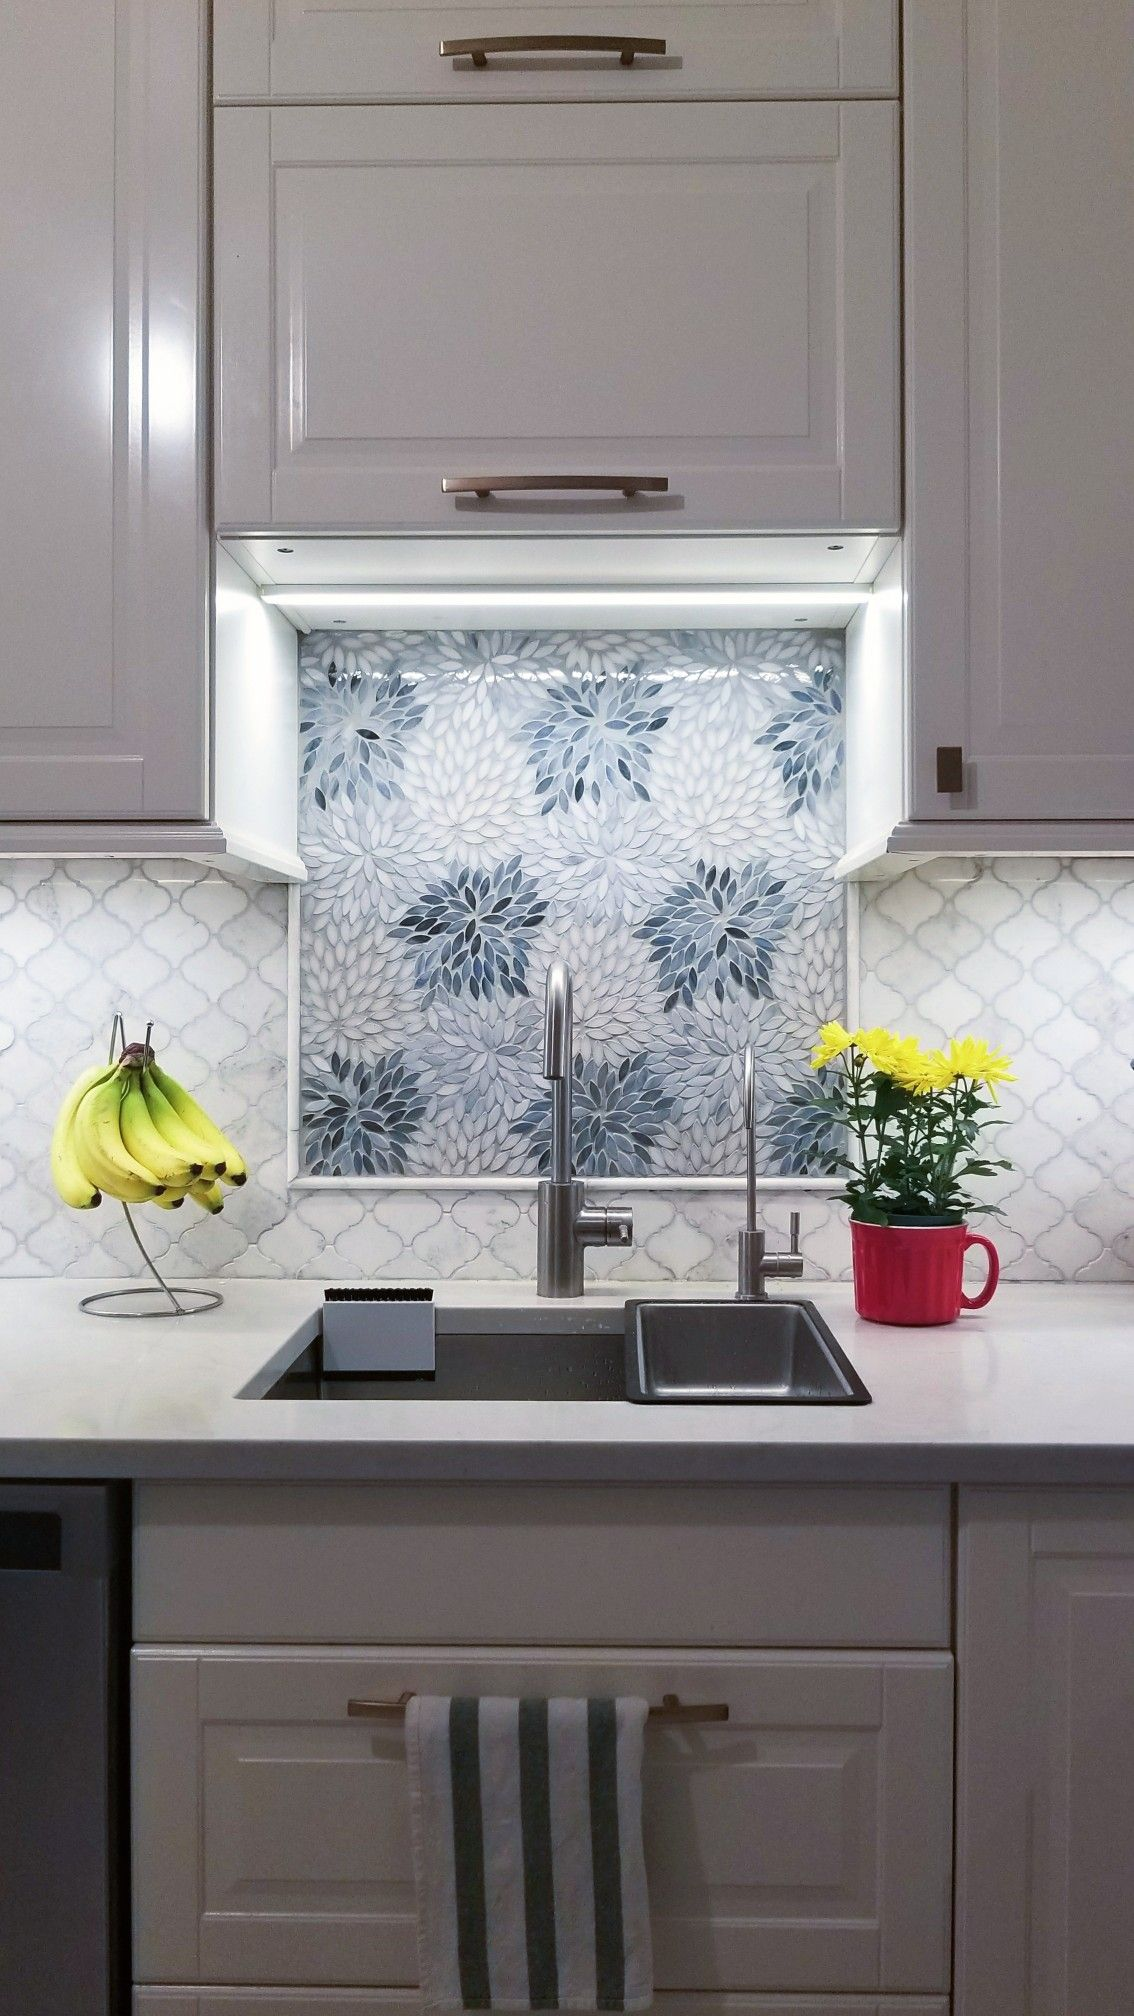 Backsplash Behind Sink Estrella Grey Blend Artistic Tile Backsplash Accent Over Sink In